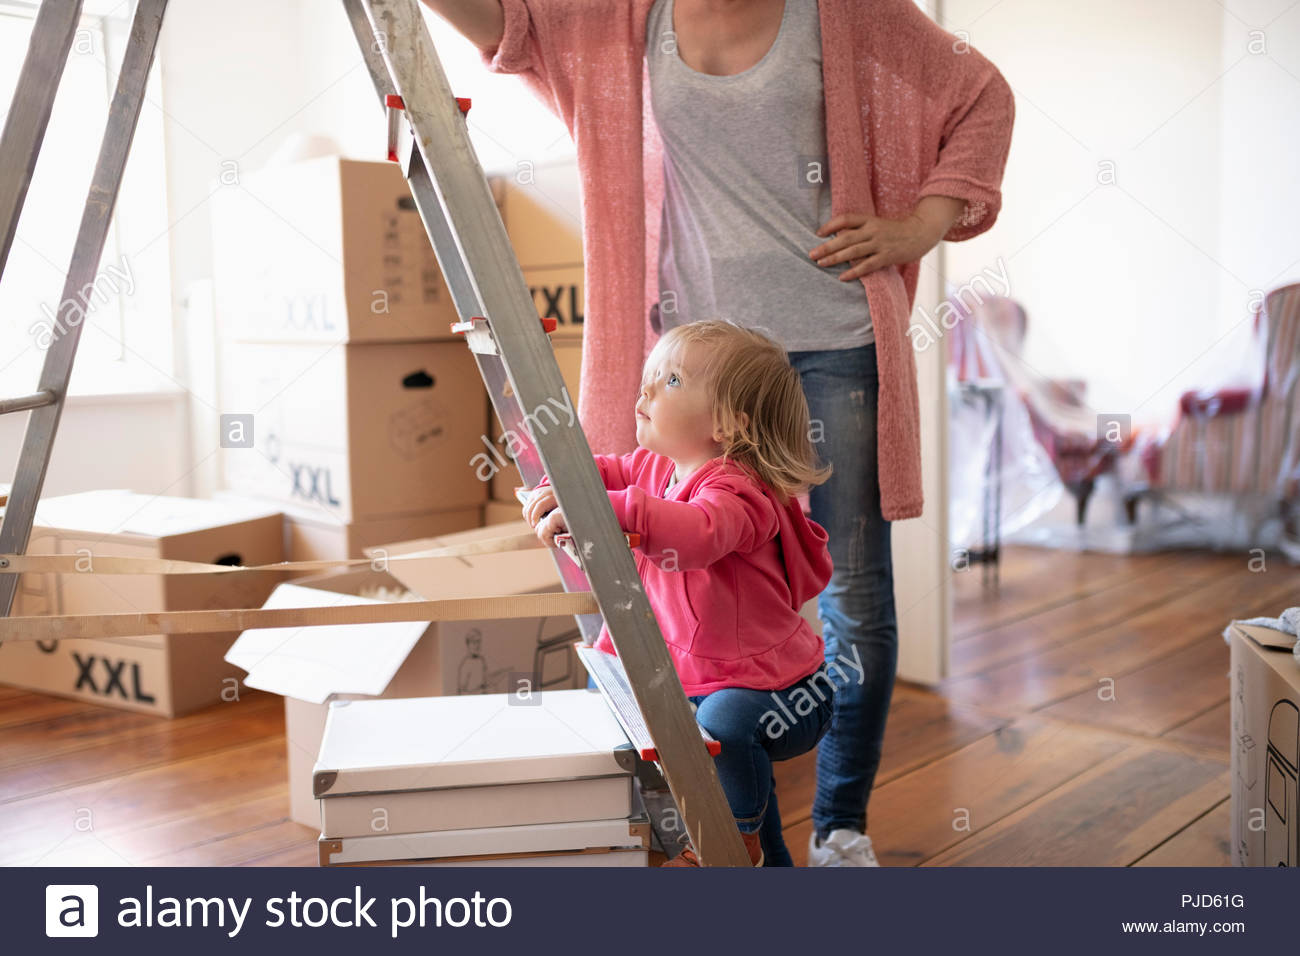 Curieux girl climbing ladder, moving into new home Photo Stock